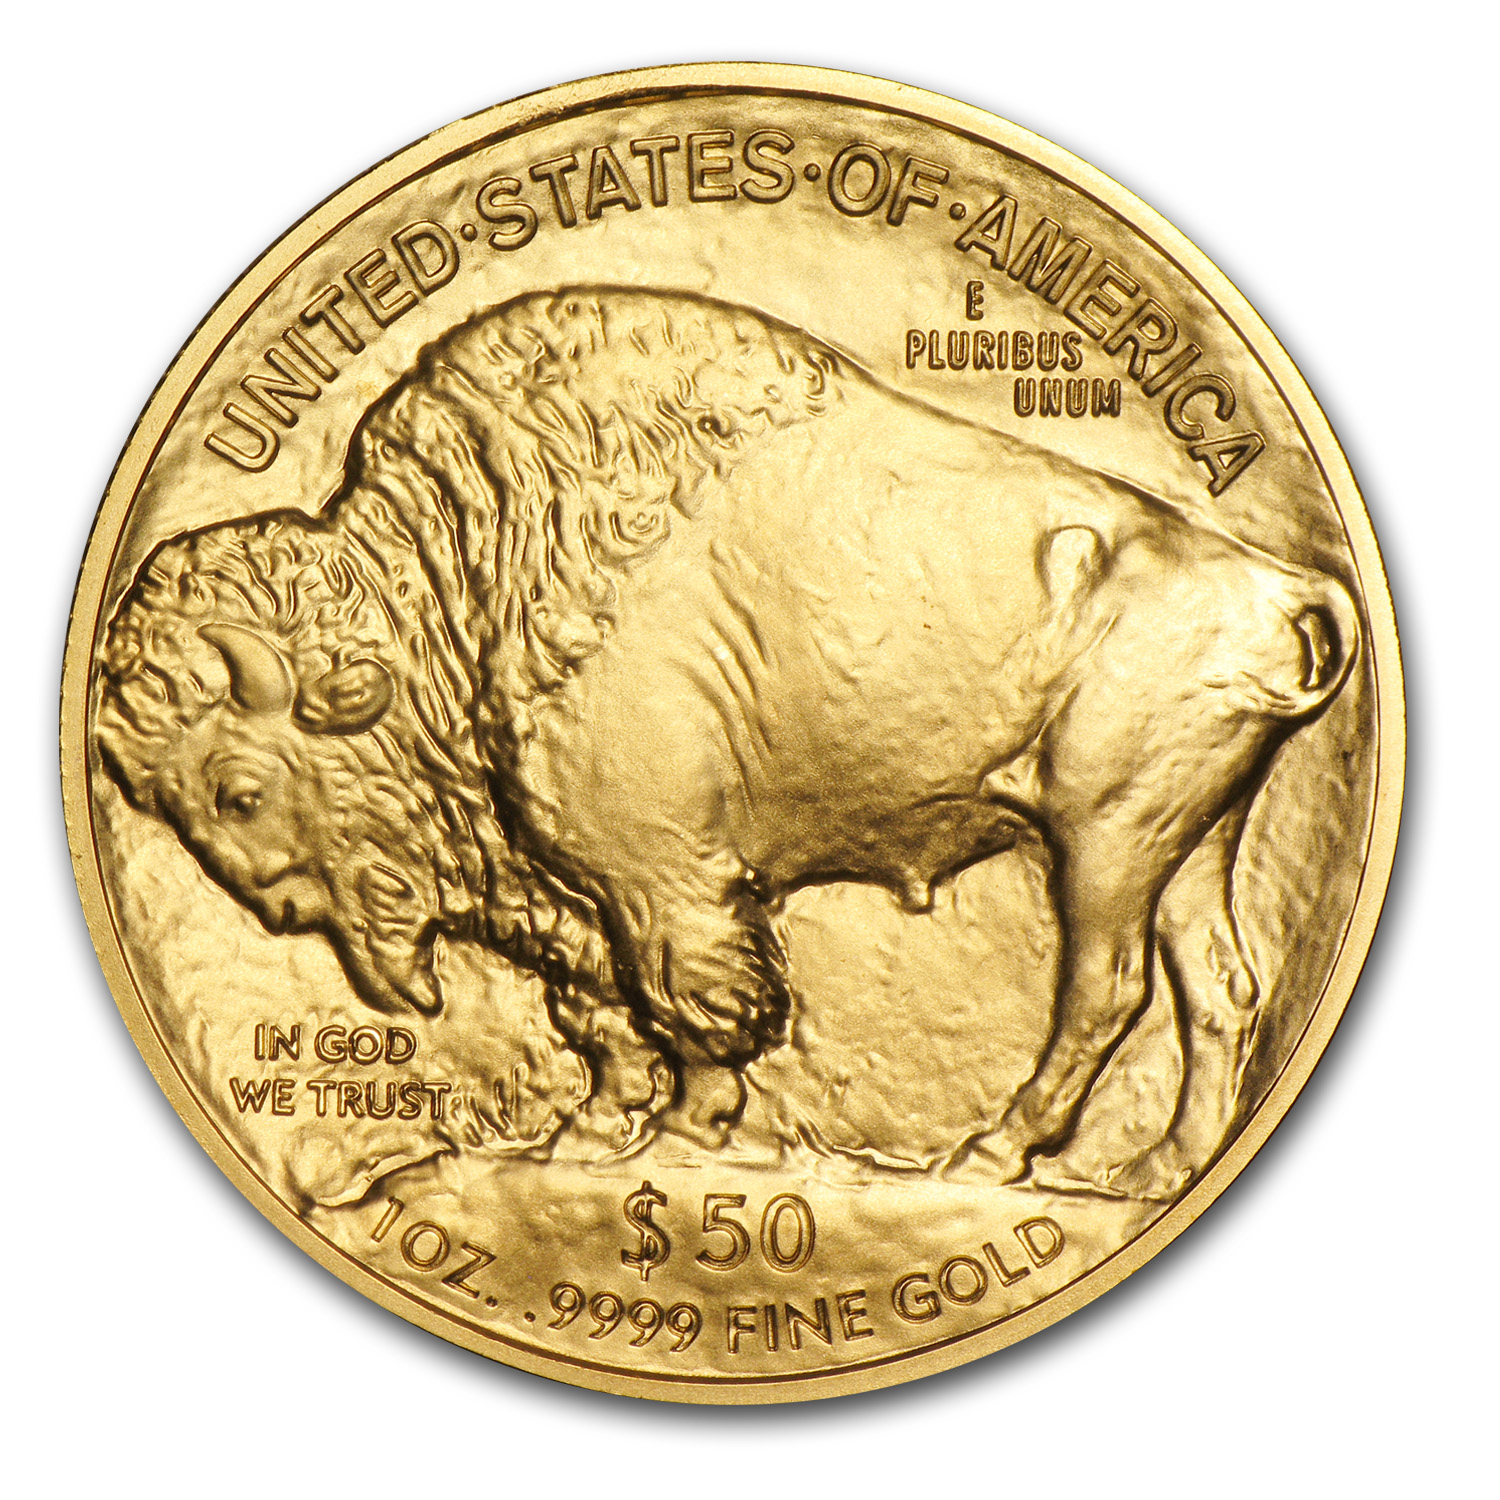 2008 1 oz Gold Buffalo Celebration Coin BU